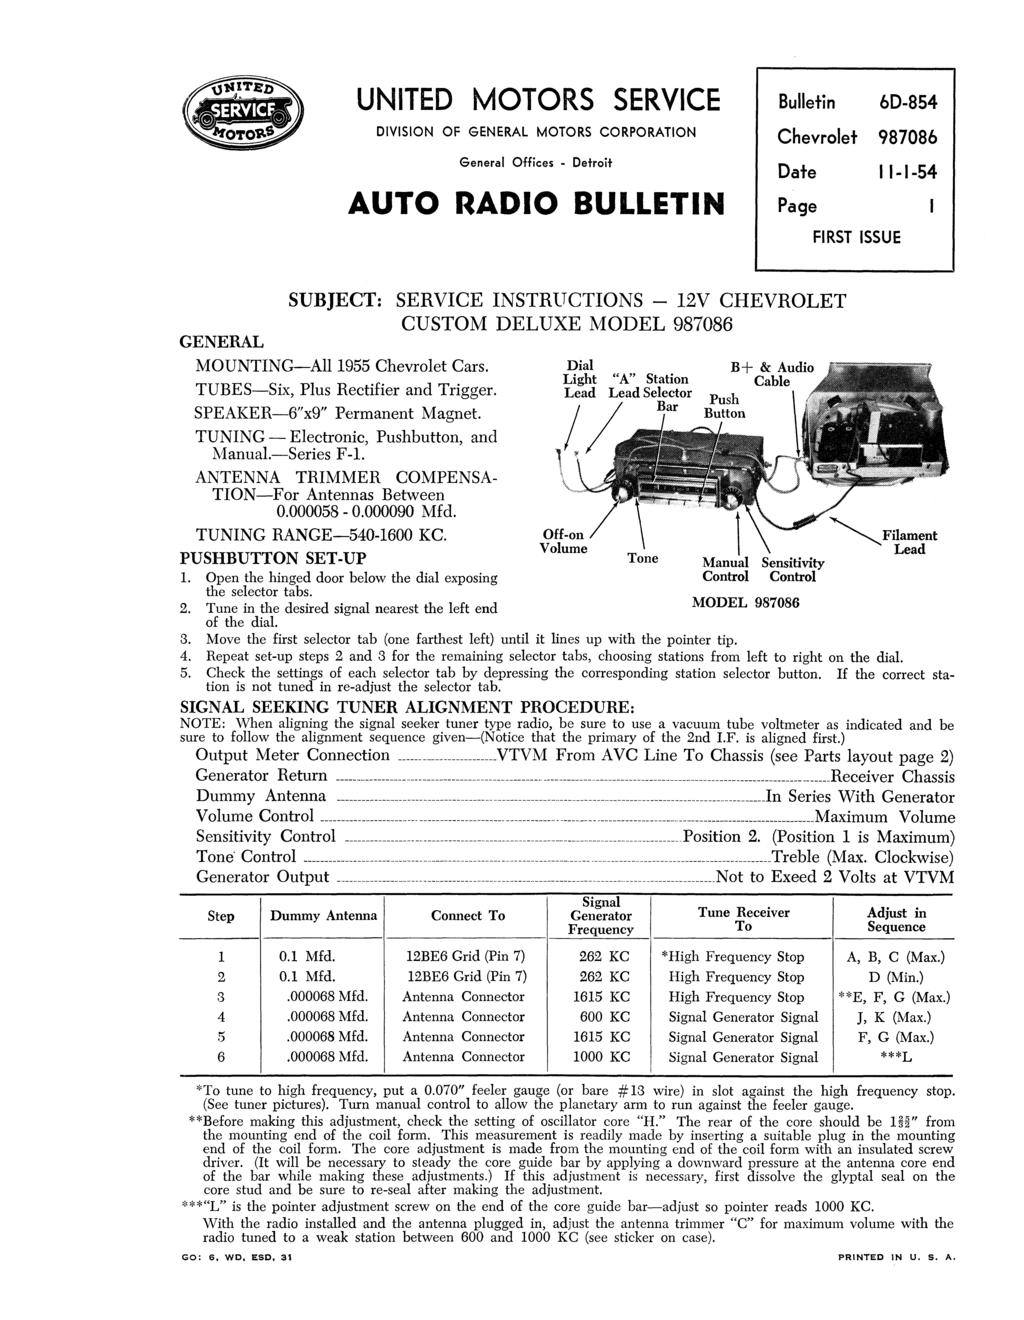 UNITED MOTORS SERVICE DIVISION OF GENERAL MOTORS CORPORATION General Offices - Detroit AUTO RADIO BULLETIN Bulletin 6D-854 Date 11-1-54 Page 1 FIRST ISSUE GENERAL SUBJECT: SERVICE INSTRUCTIONS - 12V